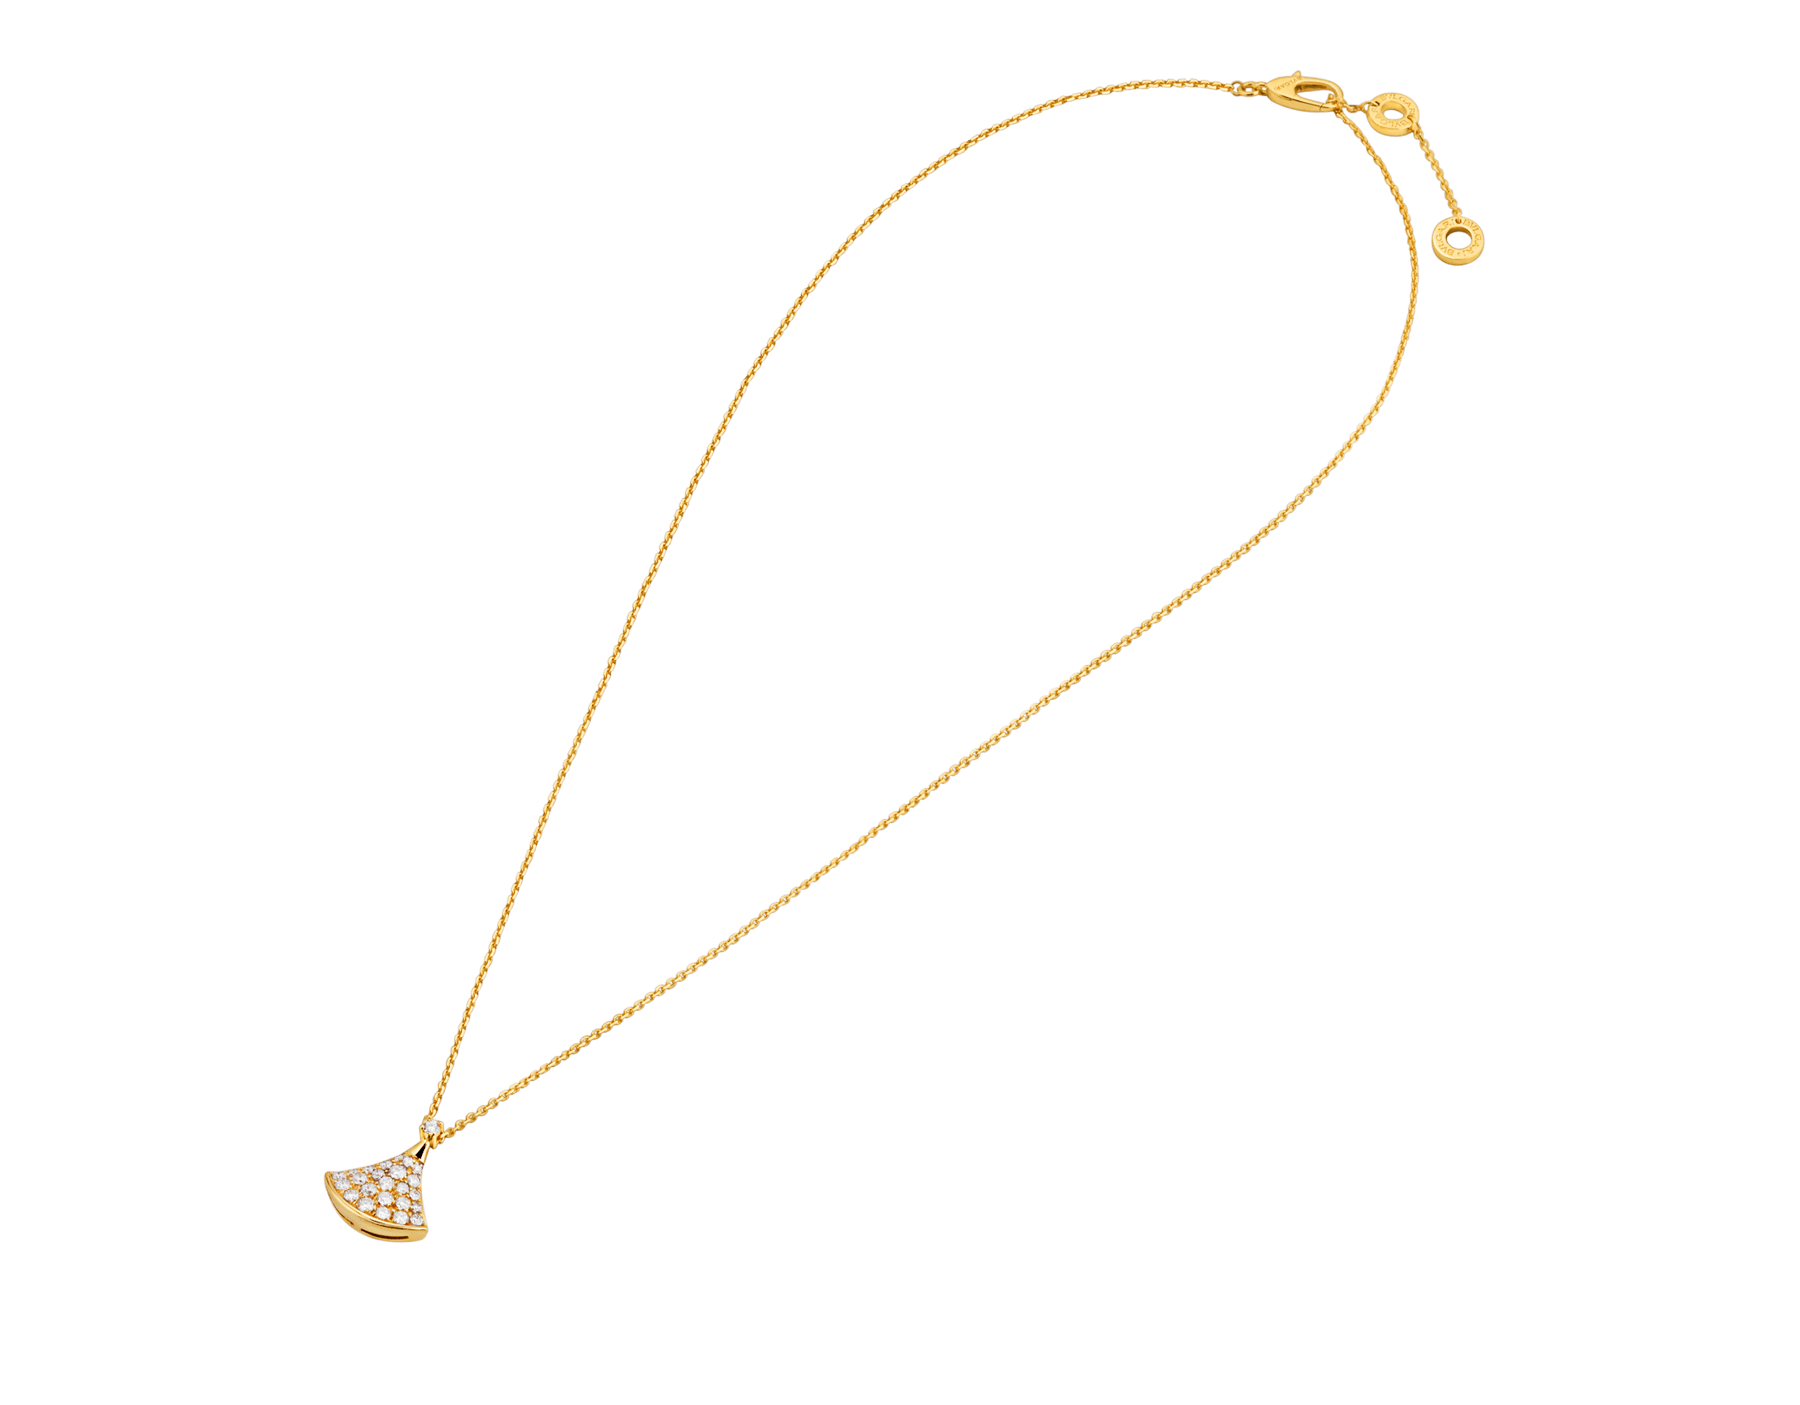 DIVAS' DREAM 18 kt yellow gold necklace with pendant set with one diamond and pavé diamonds 357511 image 2